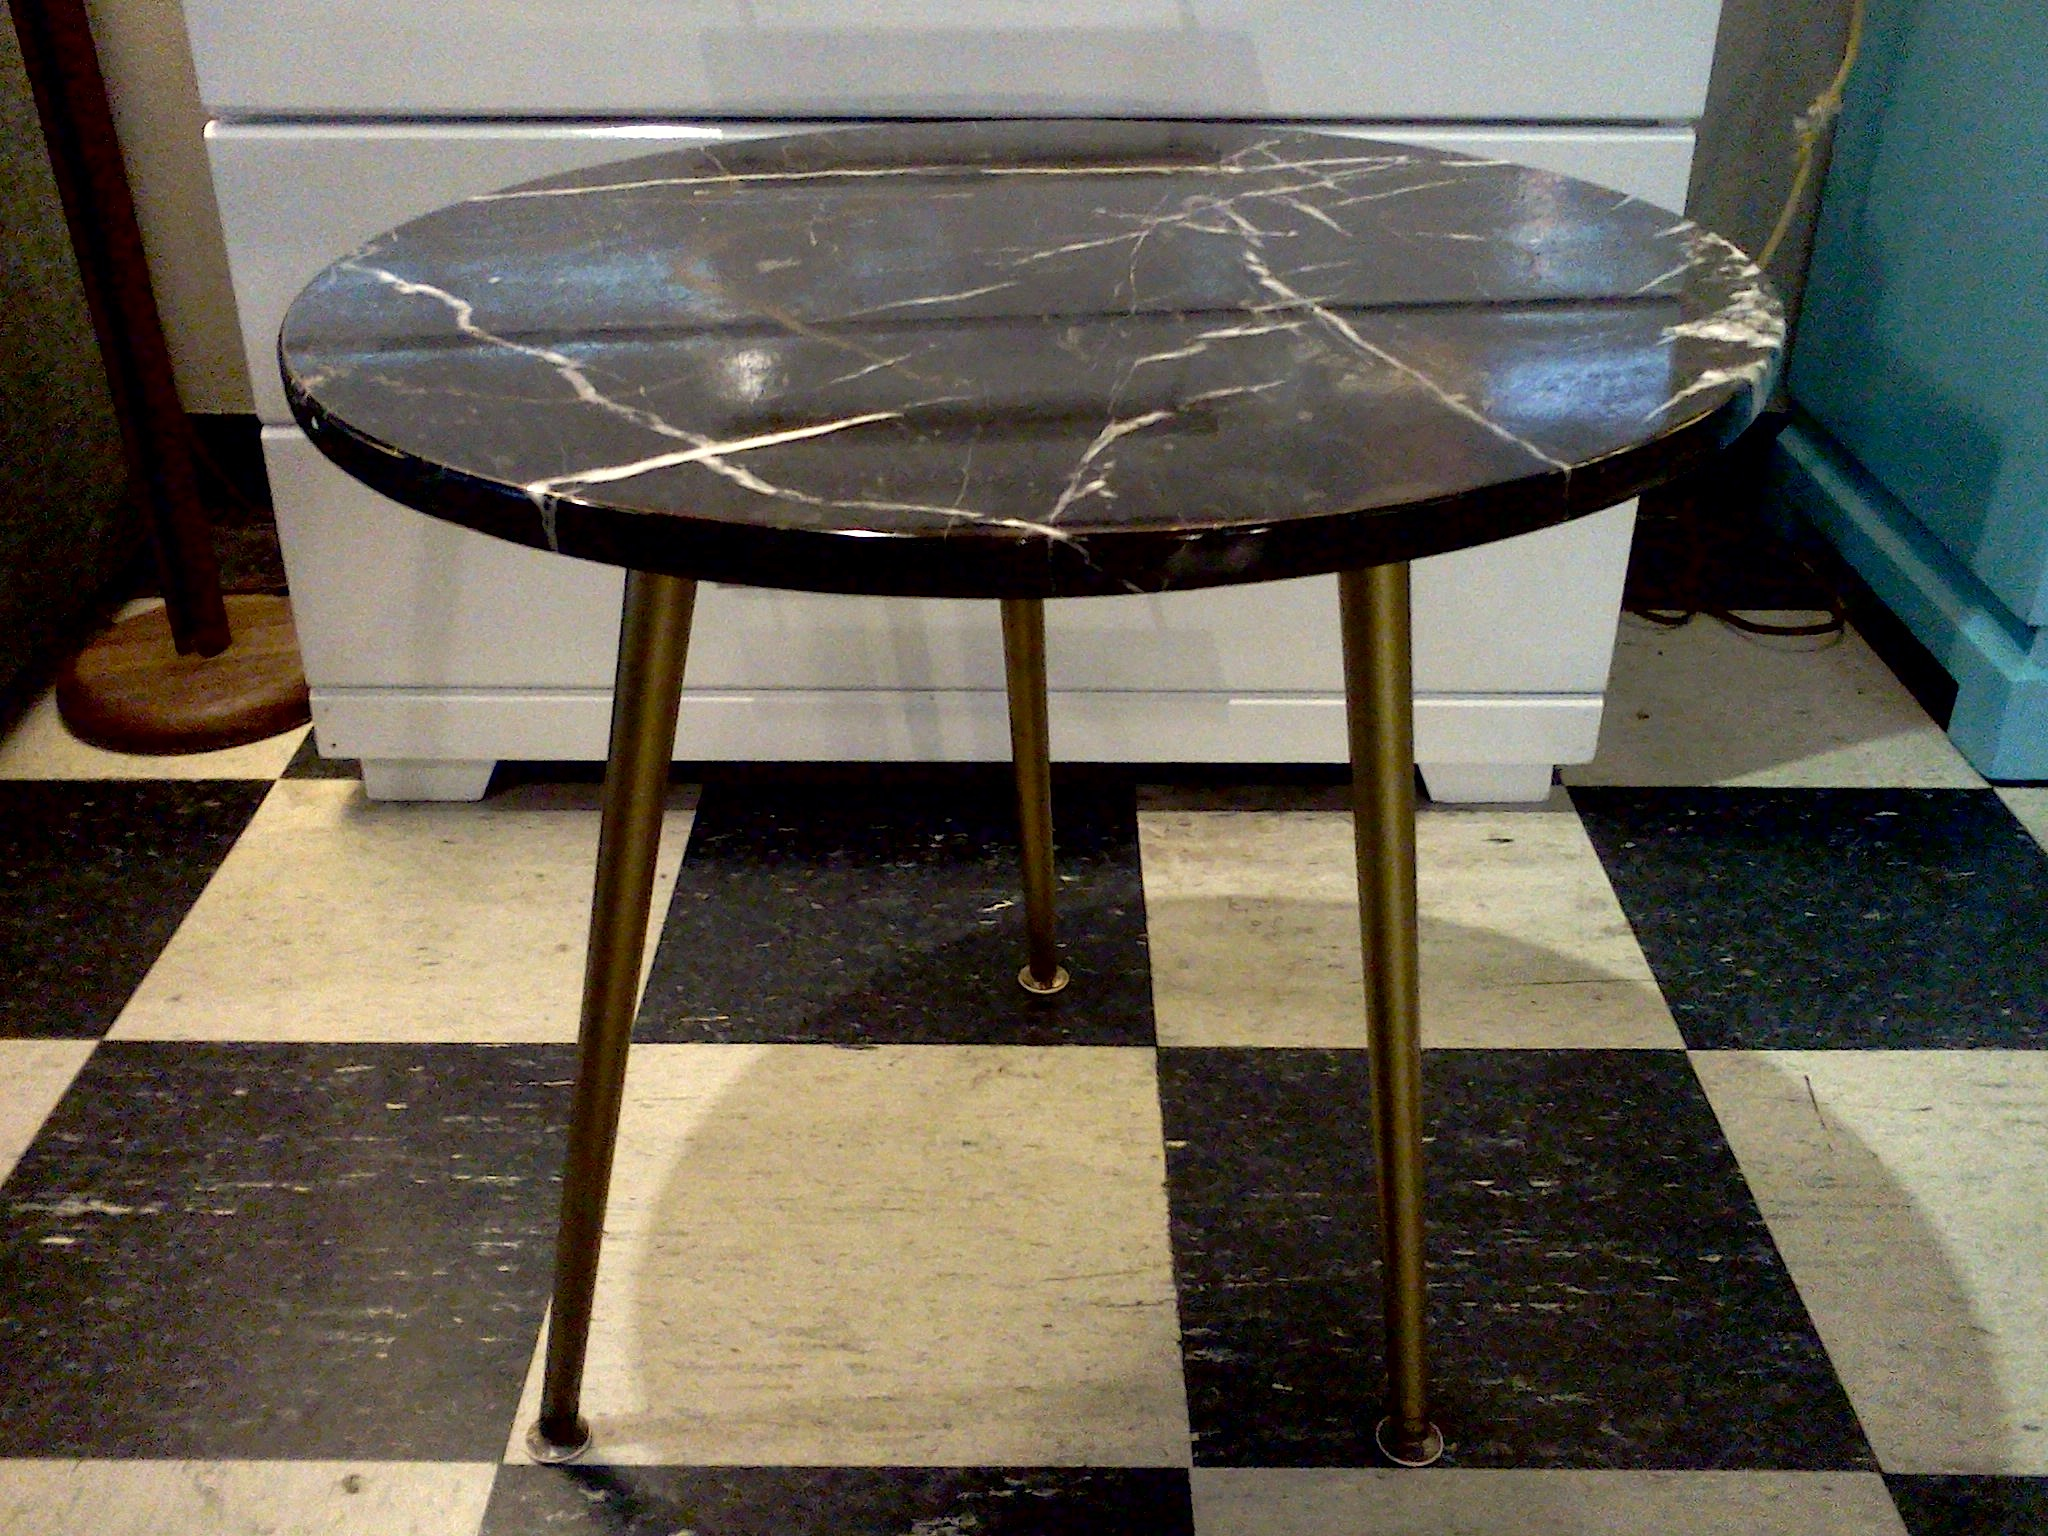 marble side table cool stuff houston mid century modern furniture marbleside black accent perspex coffee nest pier one mirrored narrow console with shelves wicker storage trunk